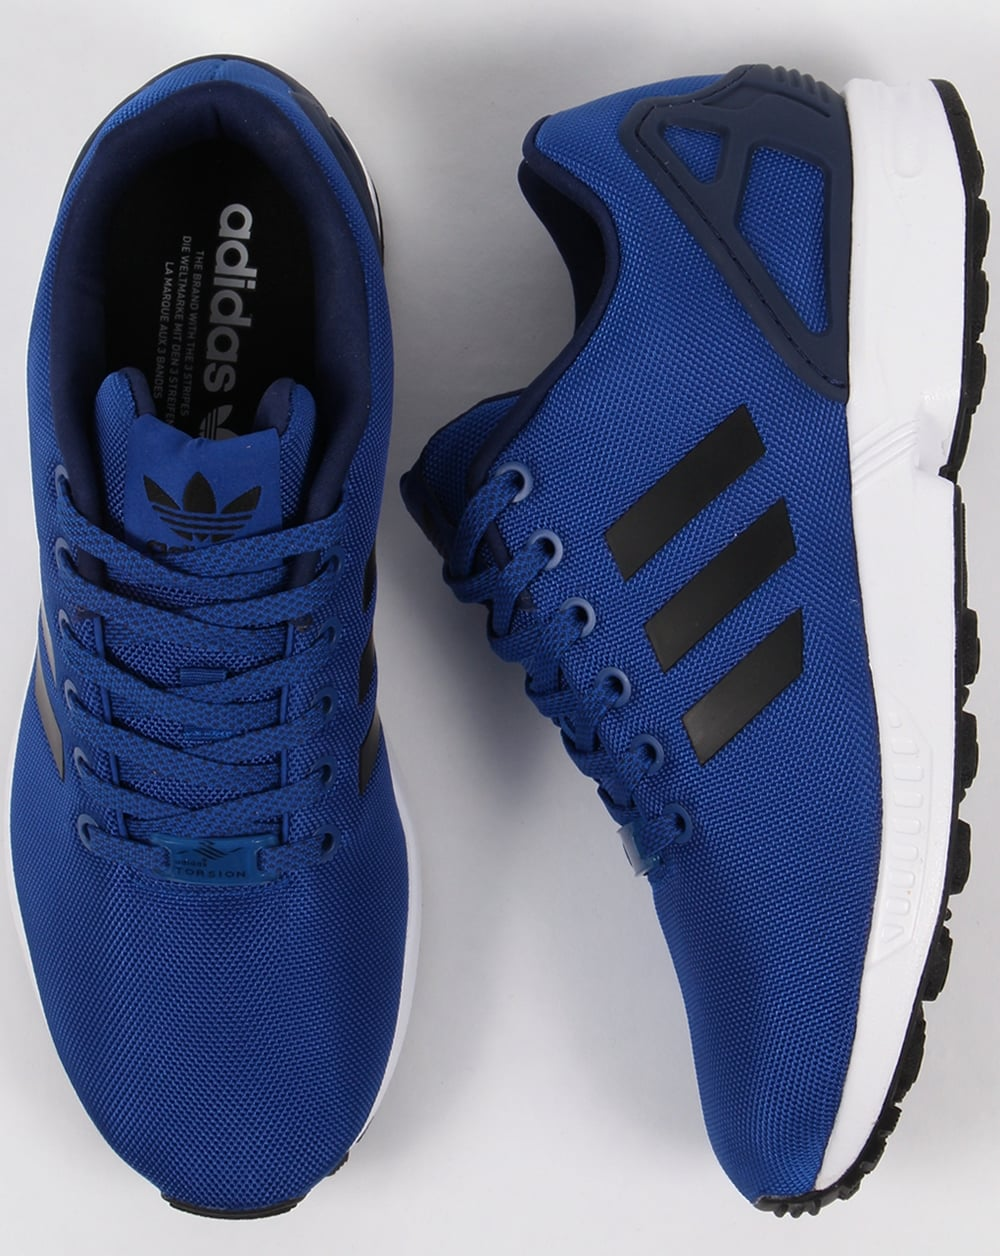 quality design fe9c8 d9748 clearance adidas zx flux blue black cb892 e9ee7